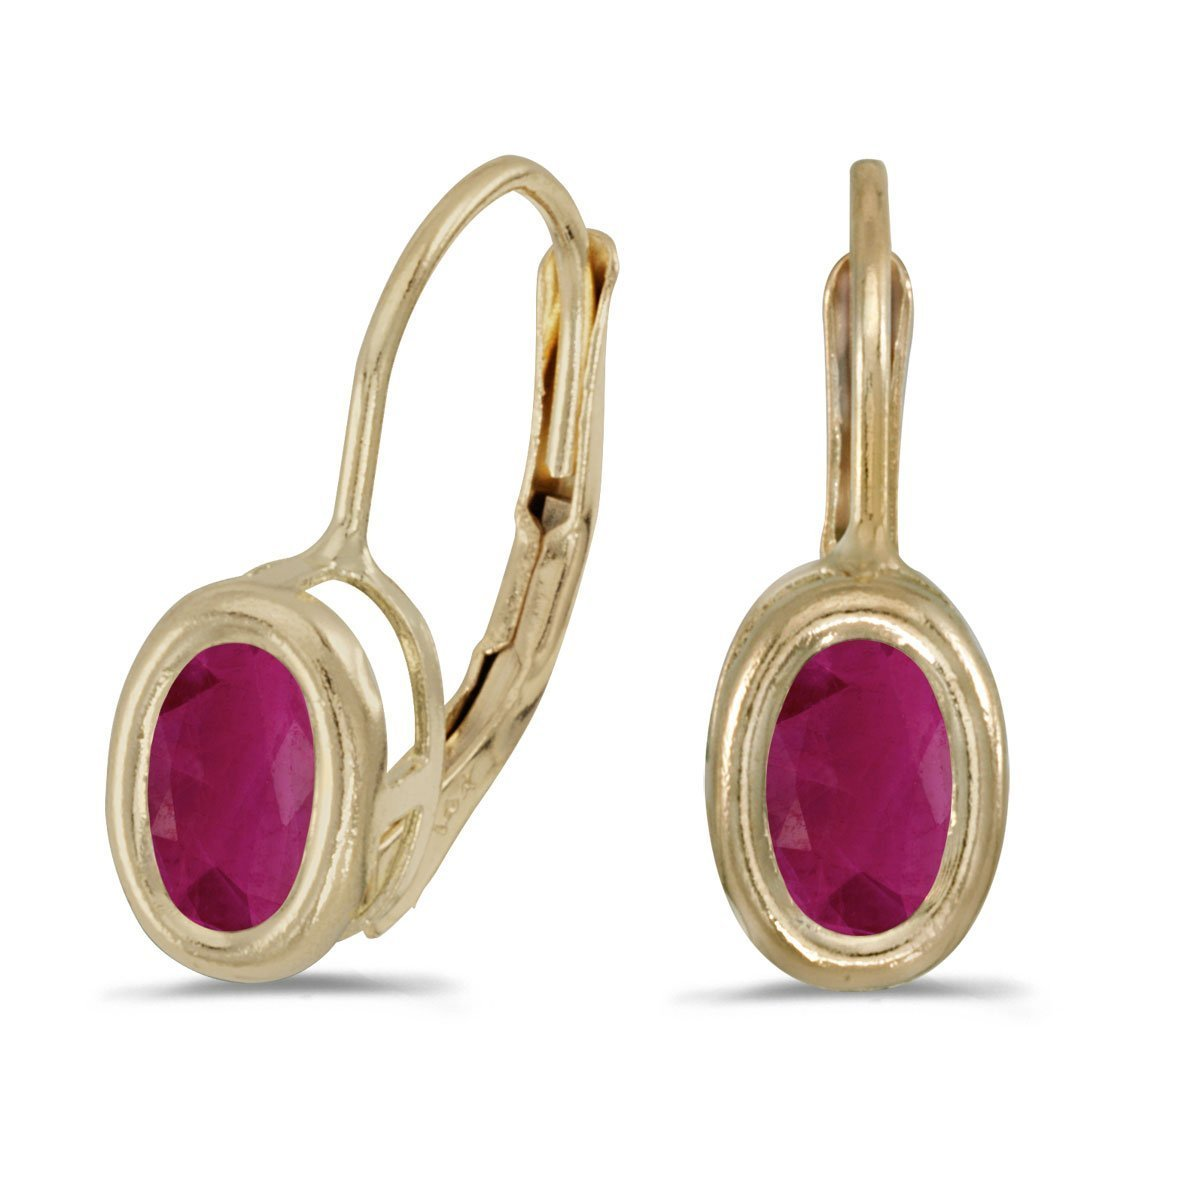 FB Jewels Solid 14k Yellow Gold Studs Genuine Red Birthstone Oval Ruby Bezel Lever-back Earrings (0.72 Cttw.)